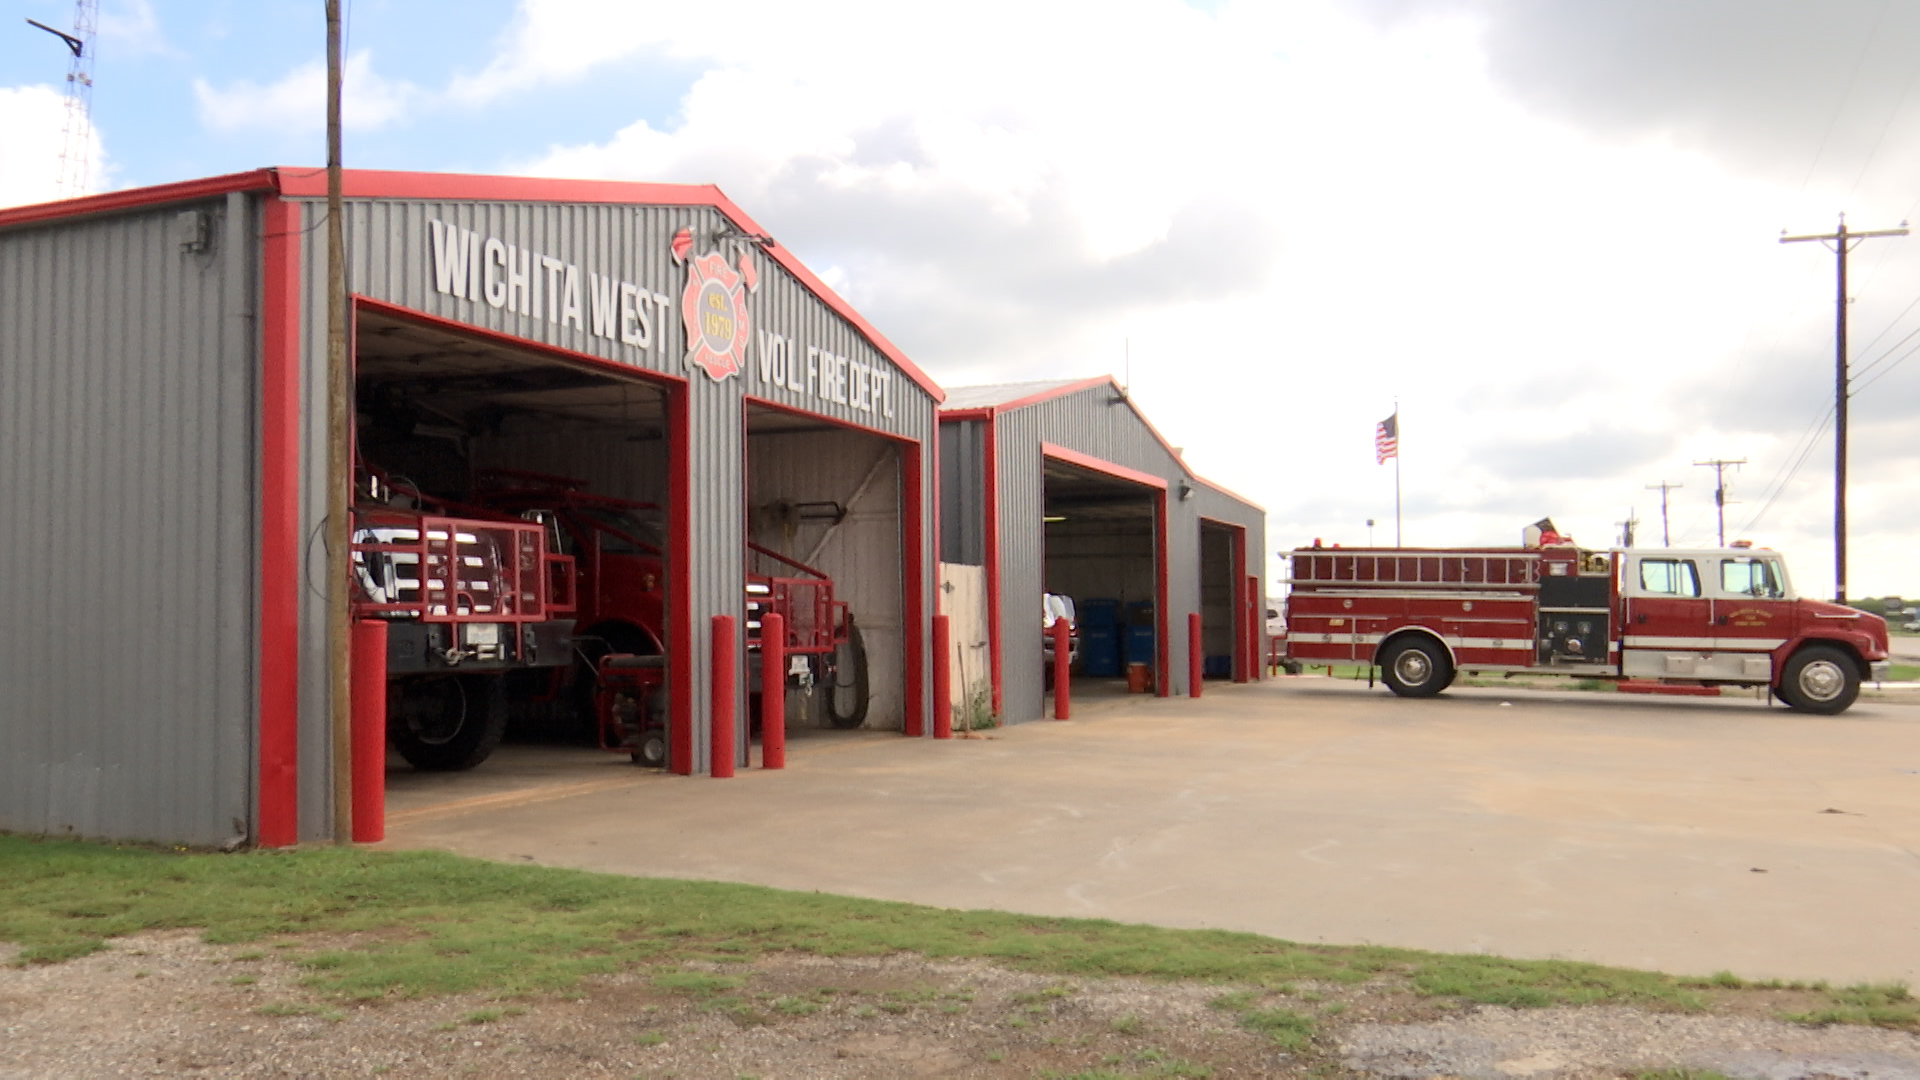 The men and women of the Wichita West Volunteer Fire Department dedicate their time protecting their neighbors in the event of a fire and other emergencies and they do this willingly, expecting nothing in return.